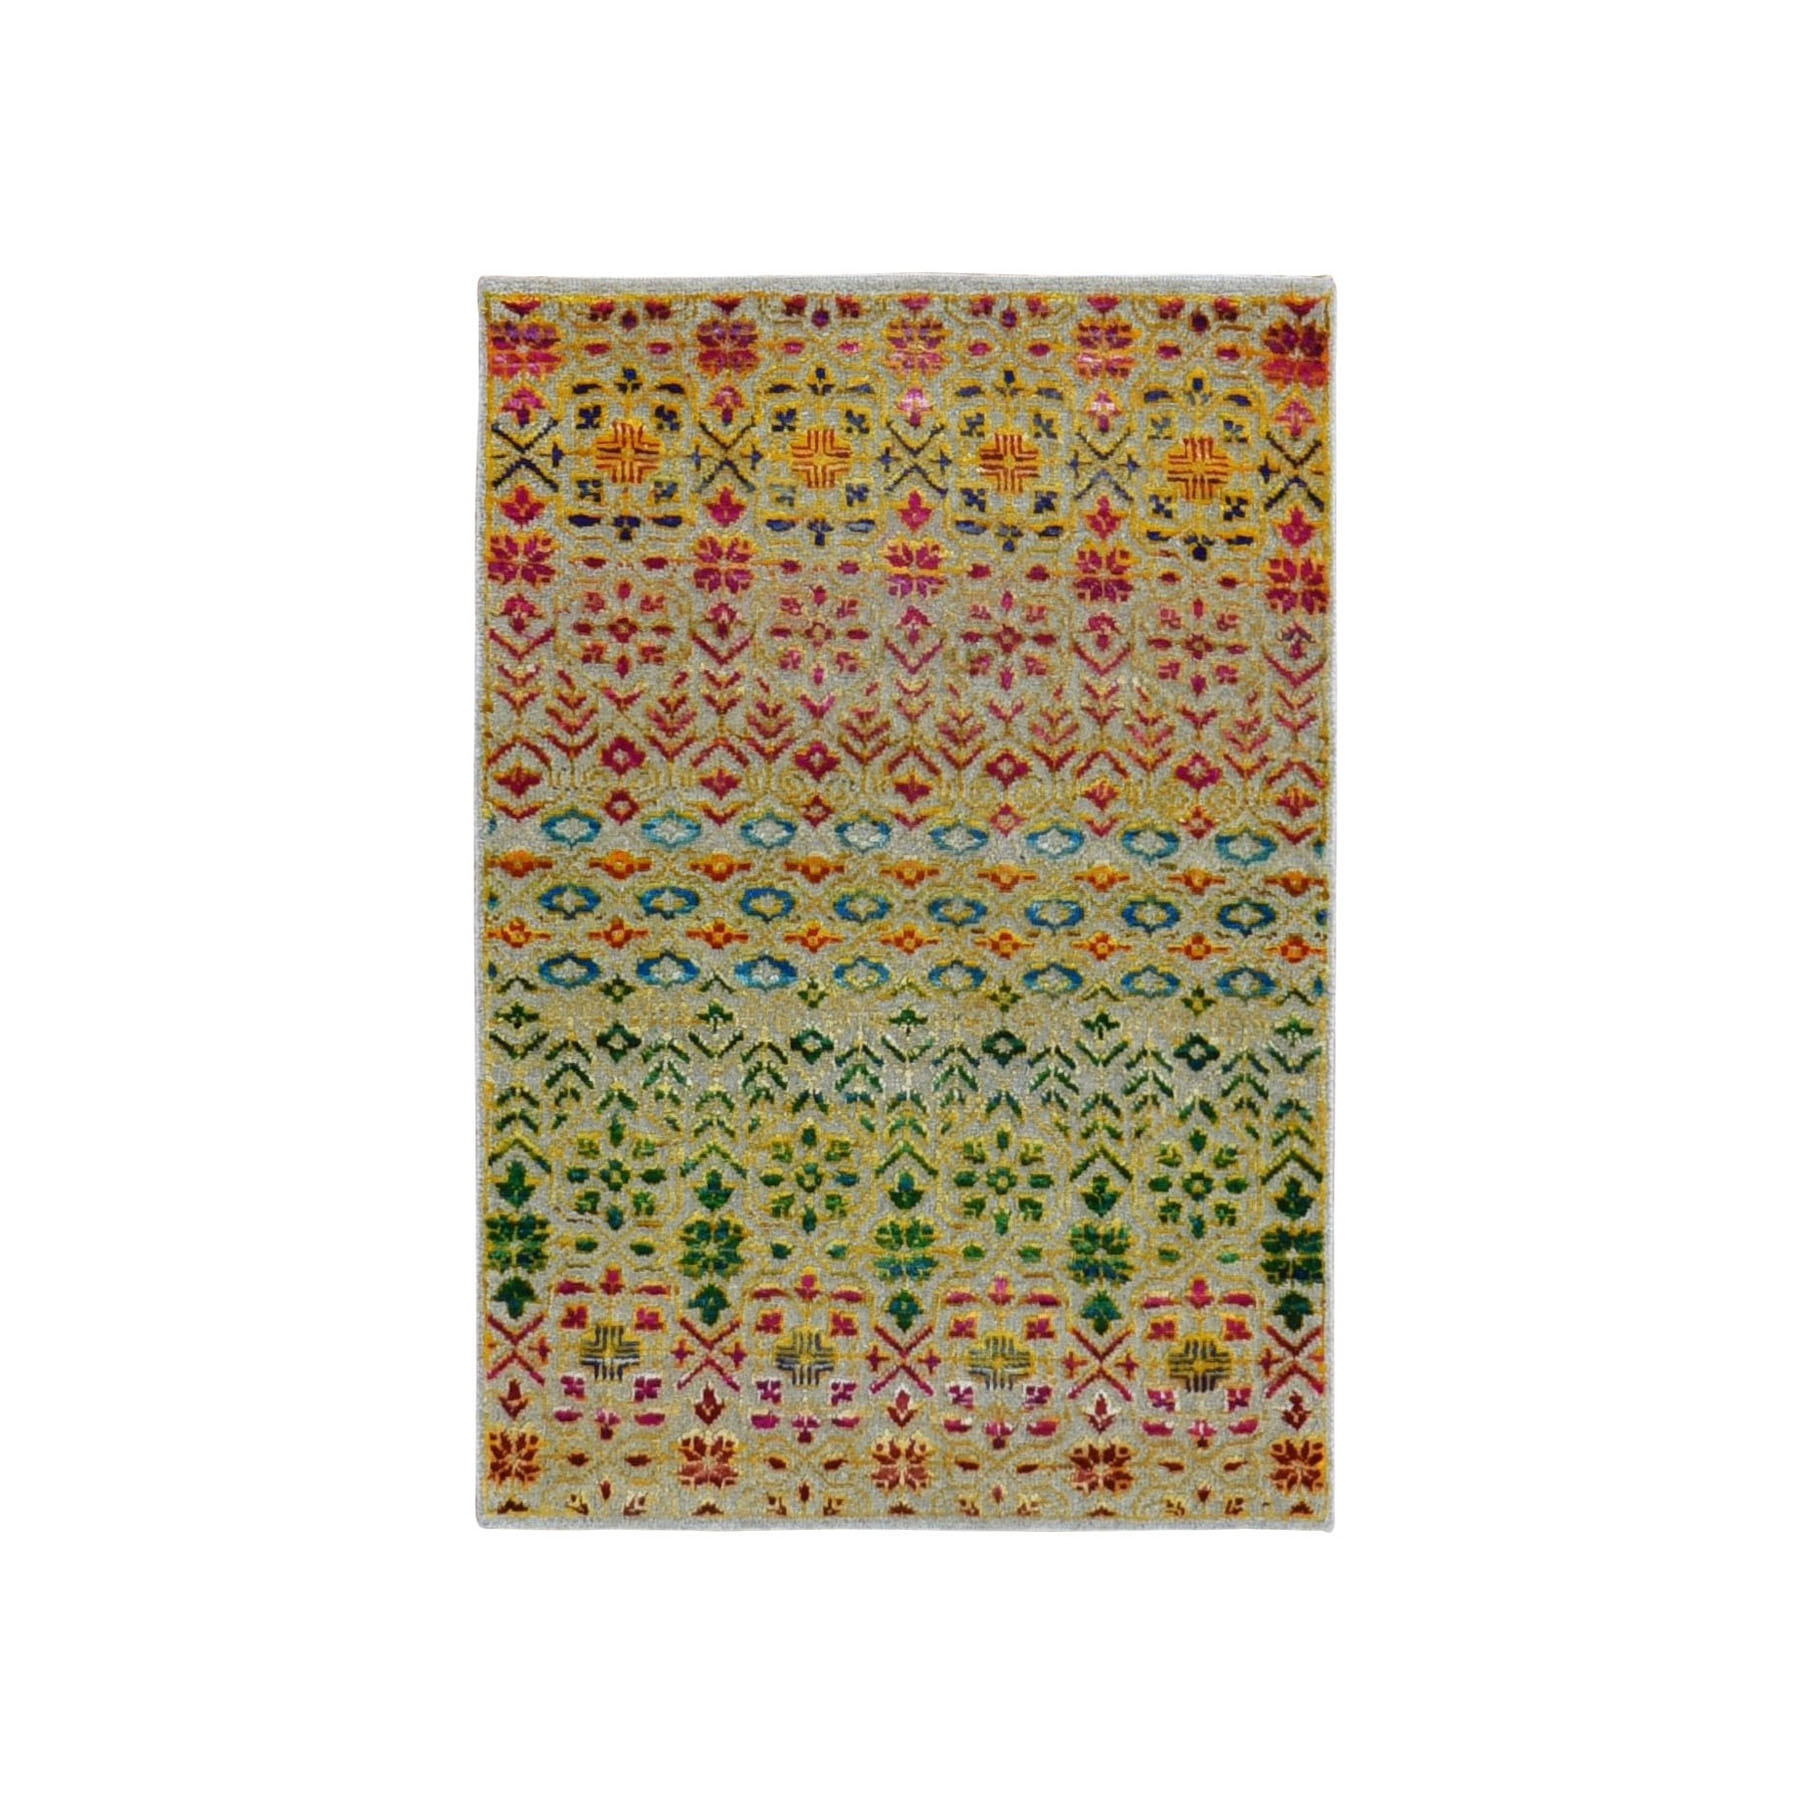 2'X3' Colorful Grass Design Sari Silk Textured Wool Modern Hand Knotted Oriental Rug moad969a